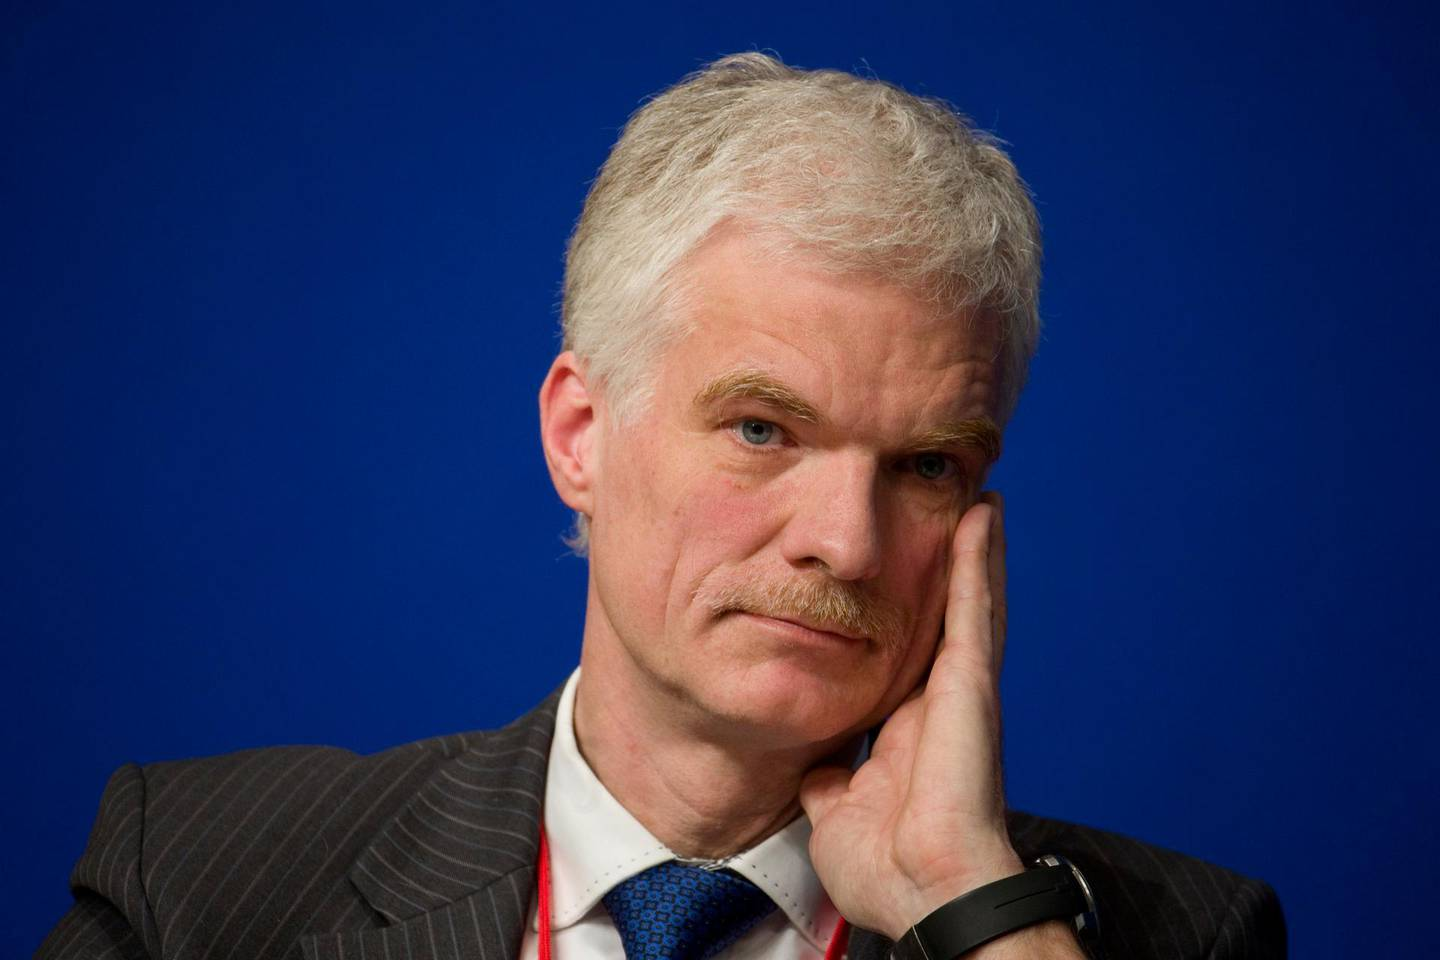 """Andreas Schleicher, Director for the Directorate of Education and Skills at the OECD, attends a symposium """"Les Entretiens du Tresor"""" at the Bercy Finance Ministry in Paris January 23, 2015.   REUTERS/Charles Platiau (FRANCE - Tags: BUSINESS POLITICS HEADSHOT)"""